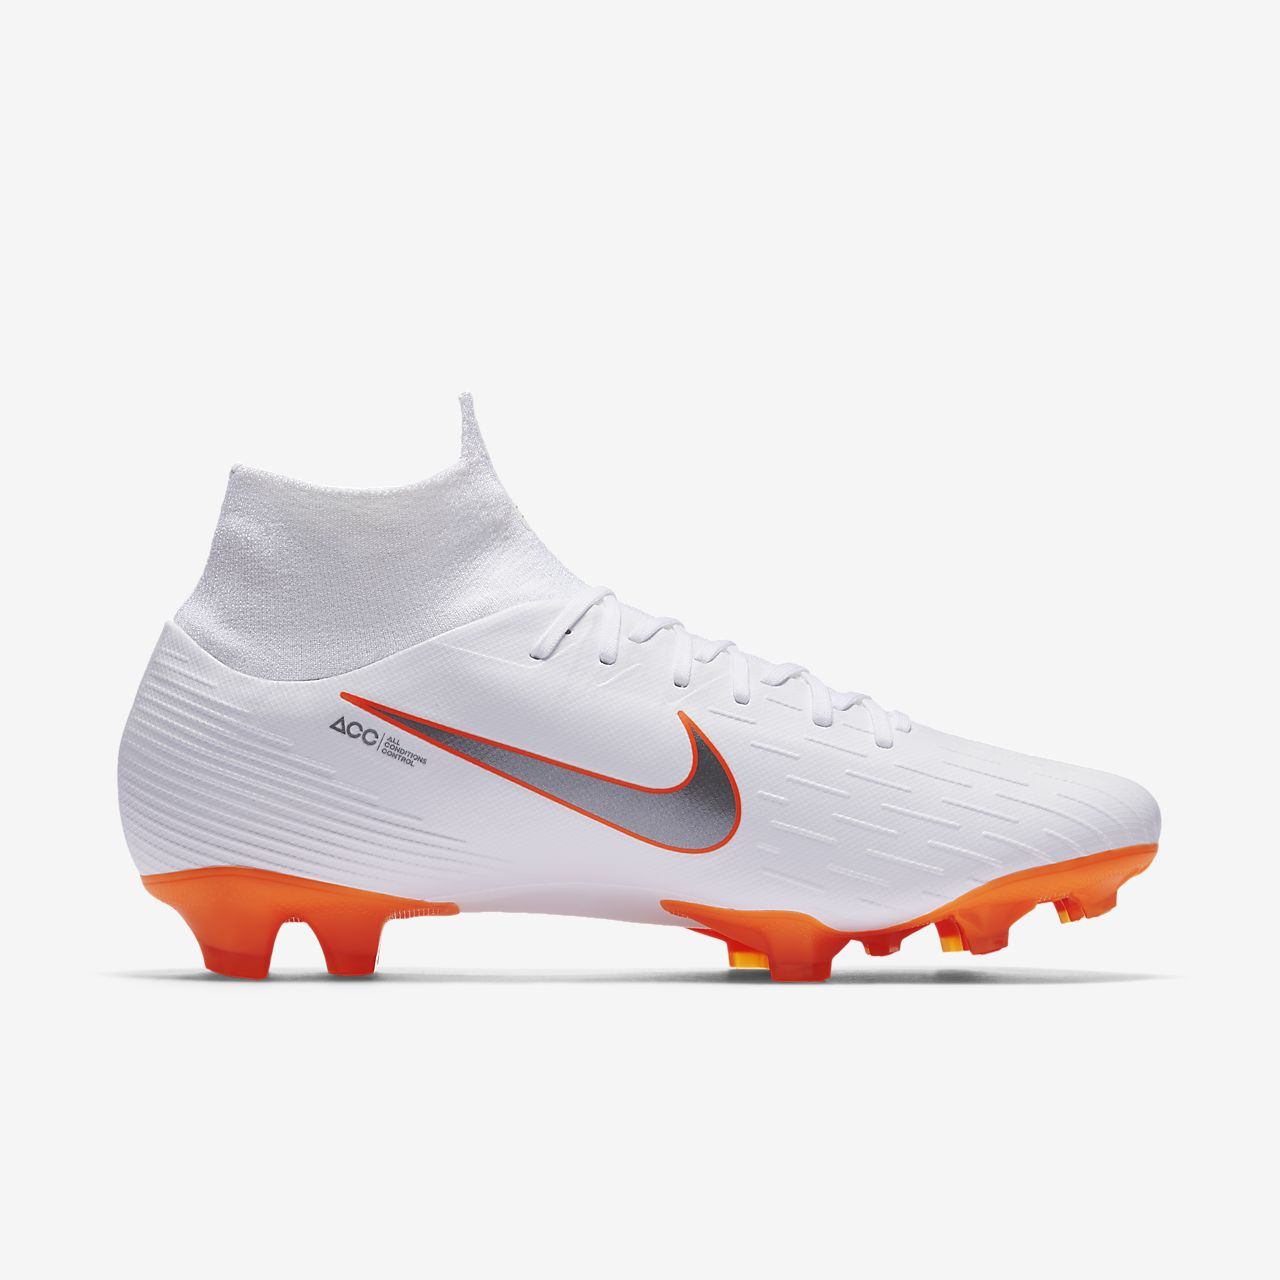 f3ca297537a Scarpe Case Qualsiasi Da Mercurial Calcio E 2 Off It Nike Acquista RqTwS7n